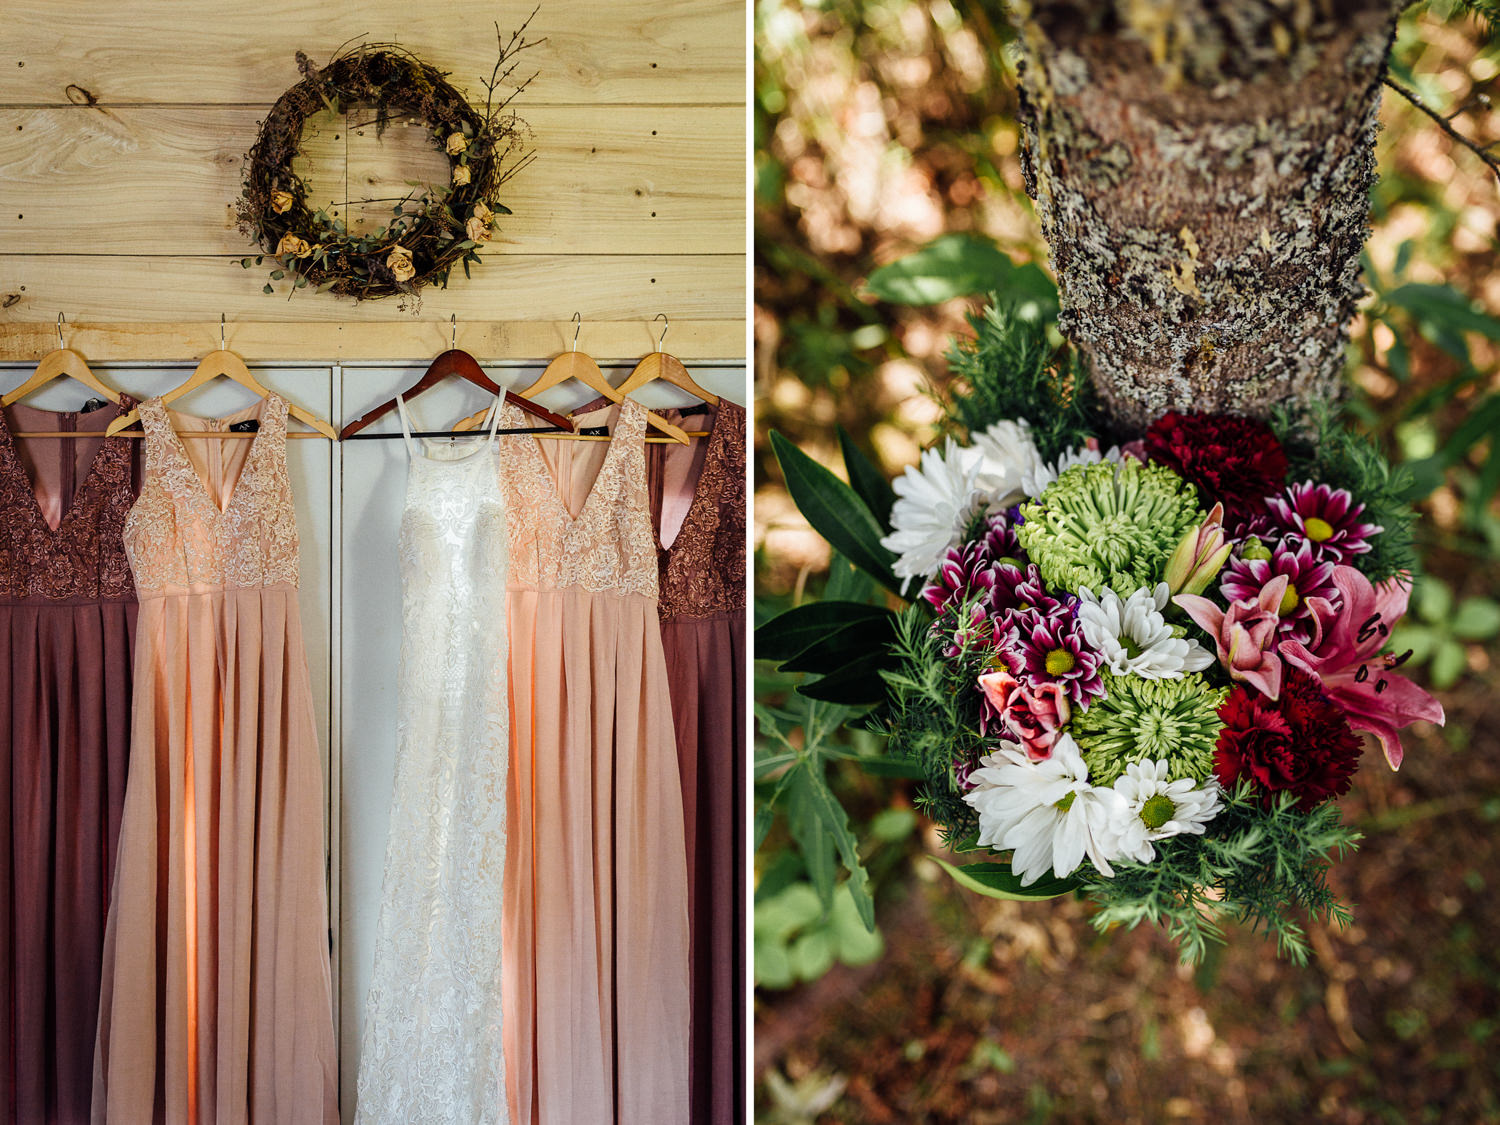 Hanging bridesmaid dresses and bridal bouquet